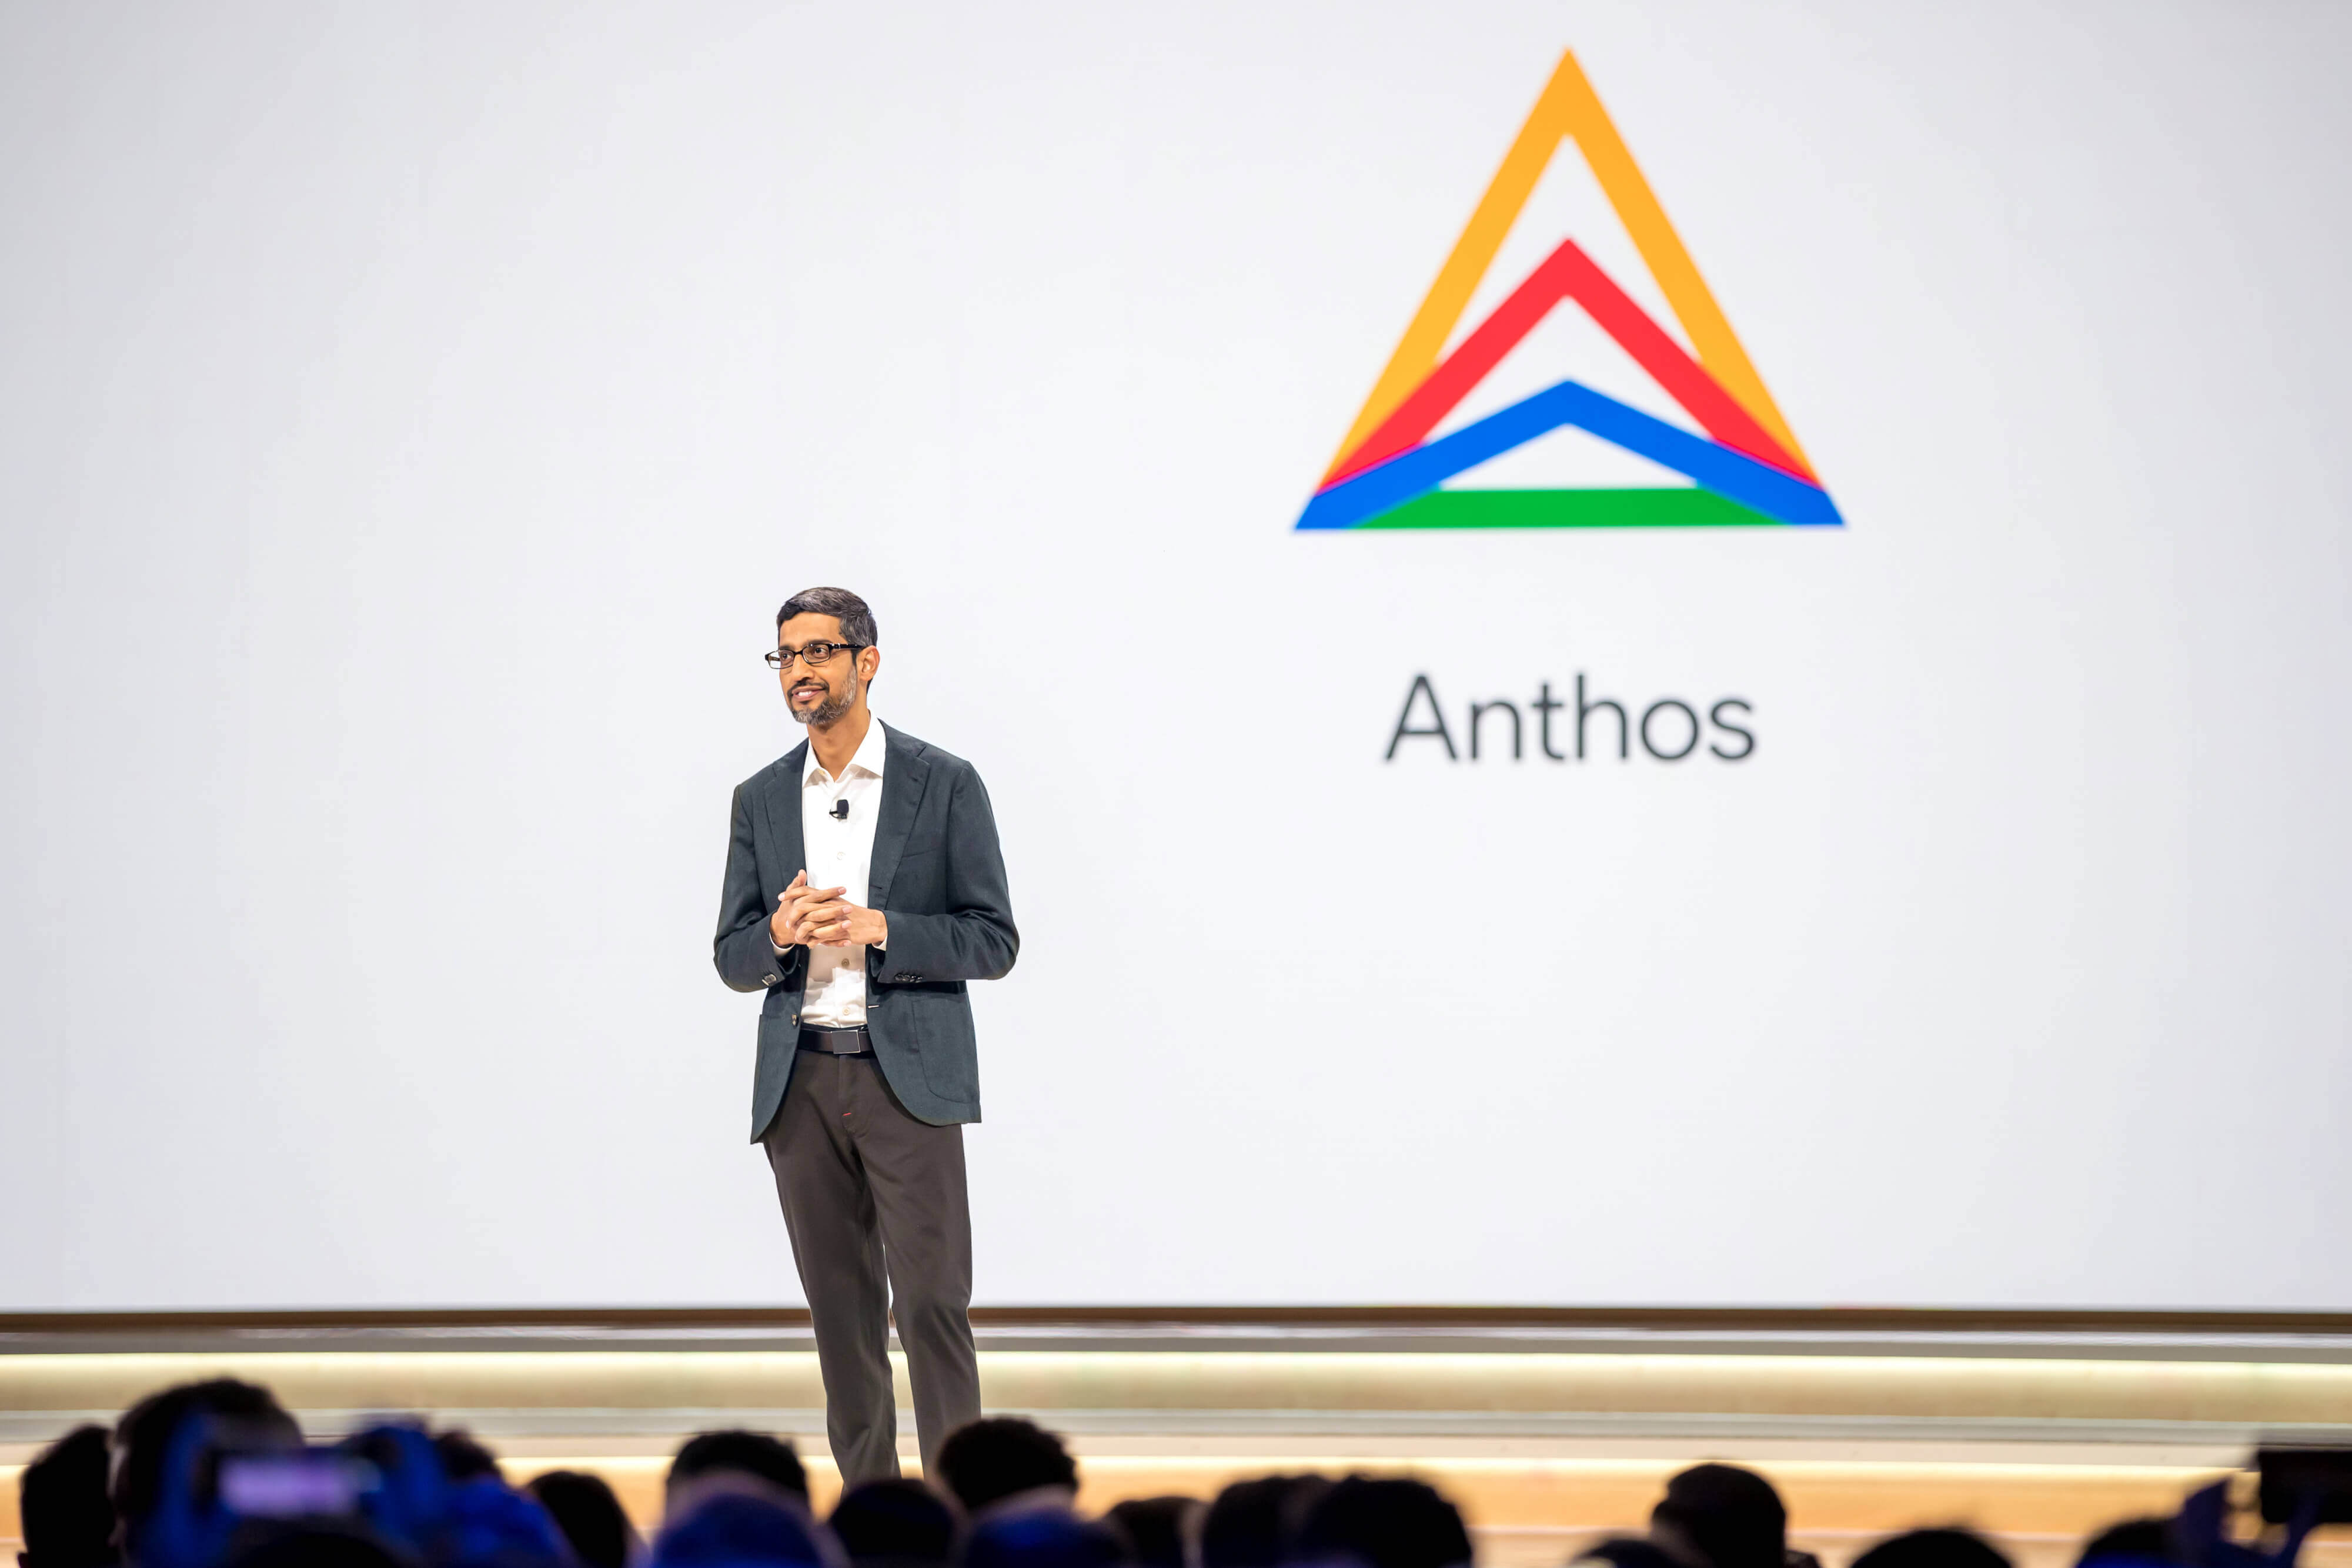 Google's parent company Alphabet sees revenue decline for the first time in 22 years